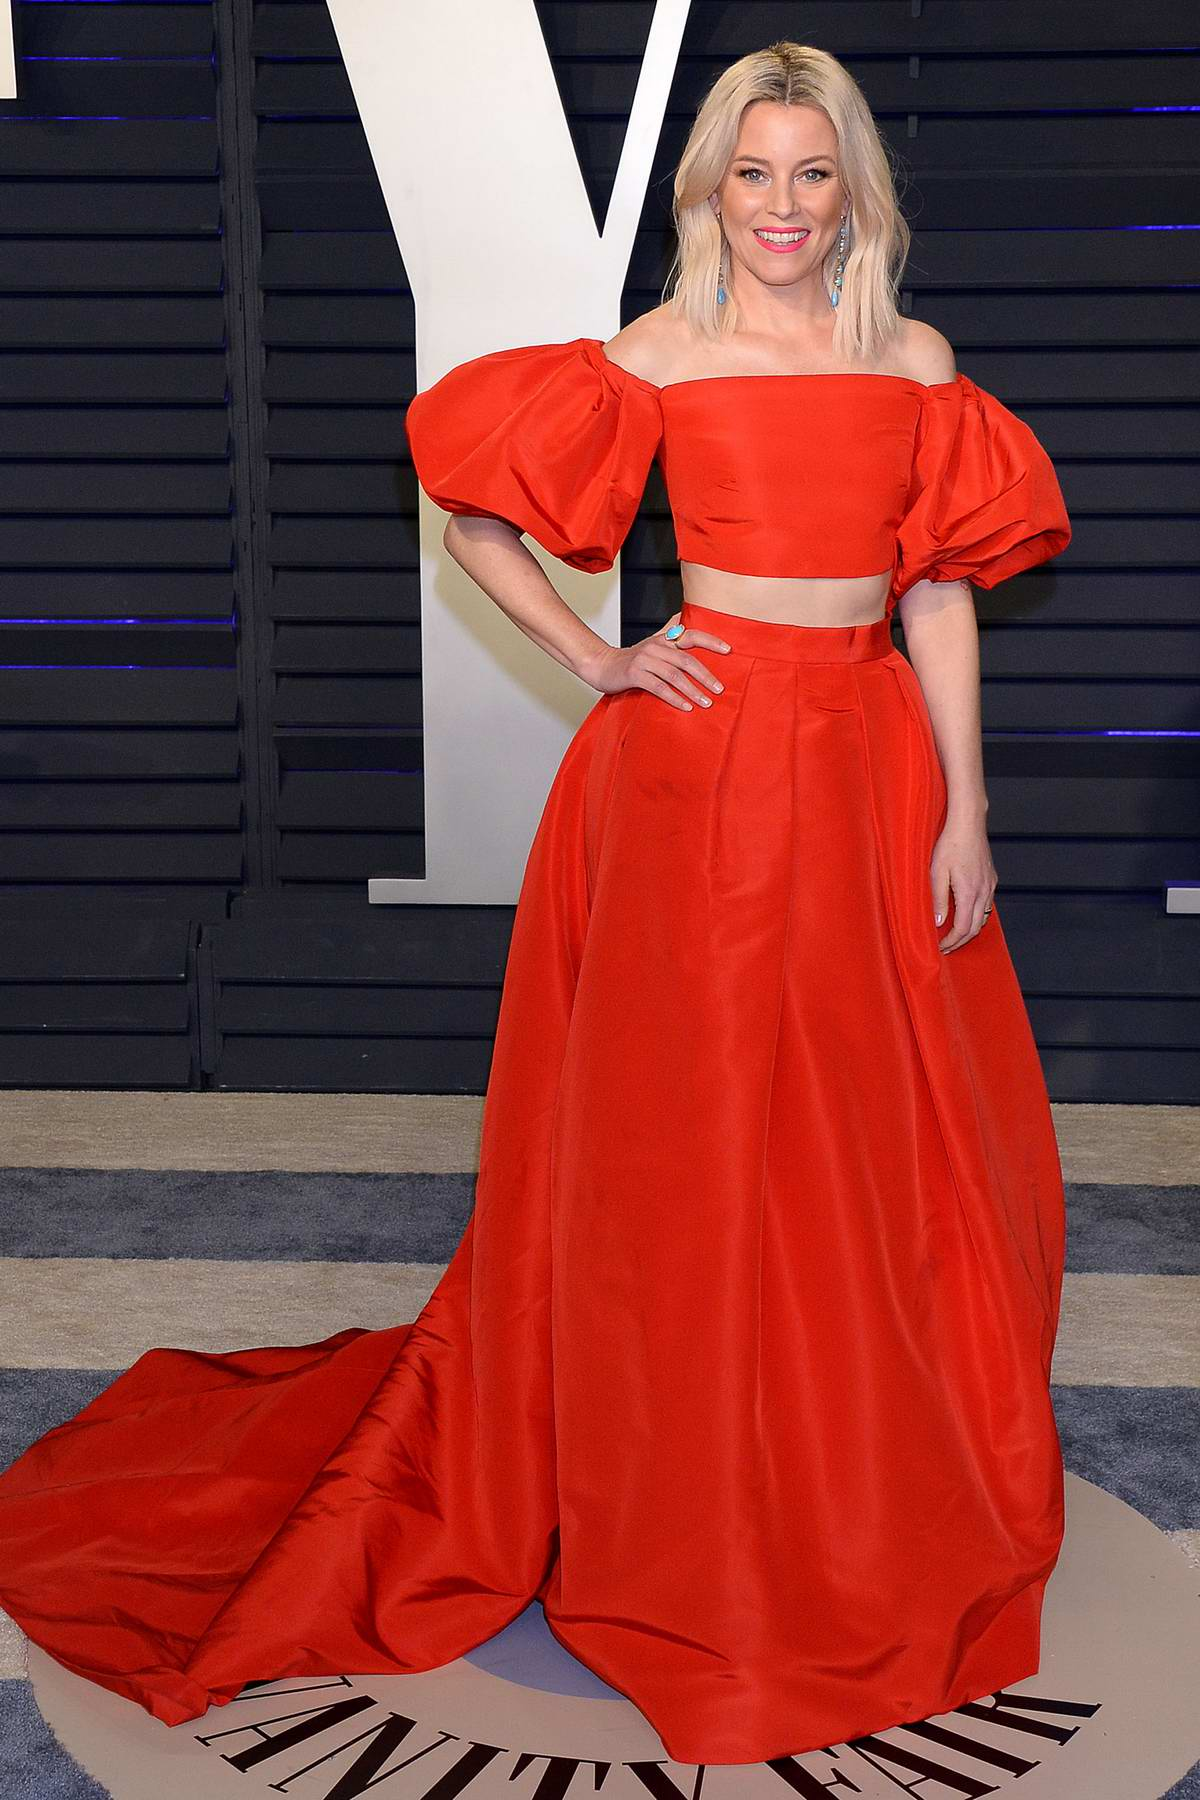 Elizabeth Banks attends the Vanity Fair Oscar Party at Wallis Annenberg Center for the Performing Arts in Beverly Hills, California